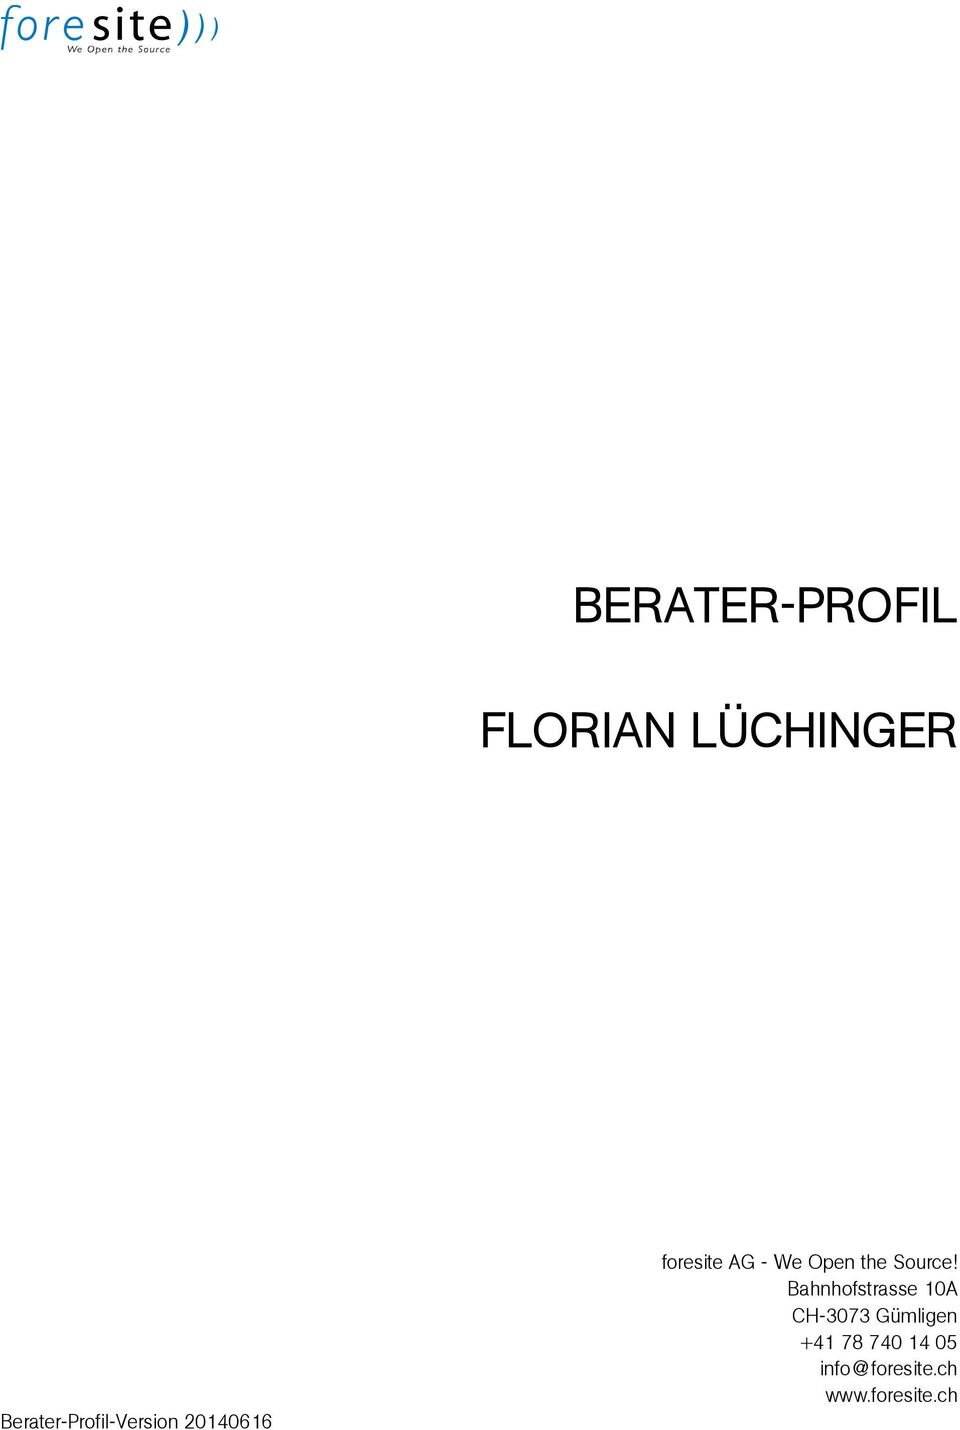 We Open the Source!